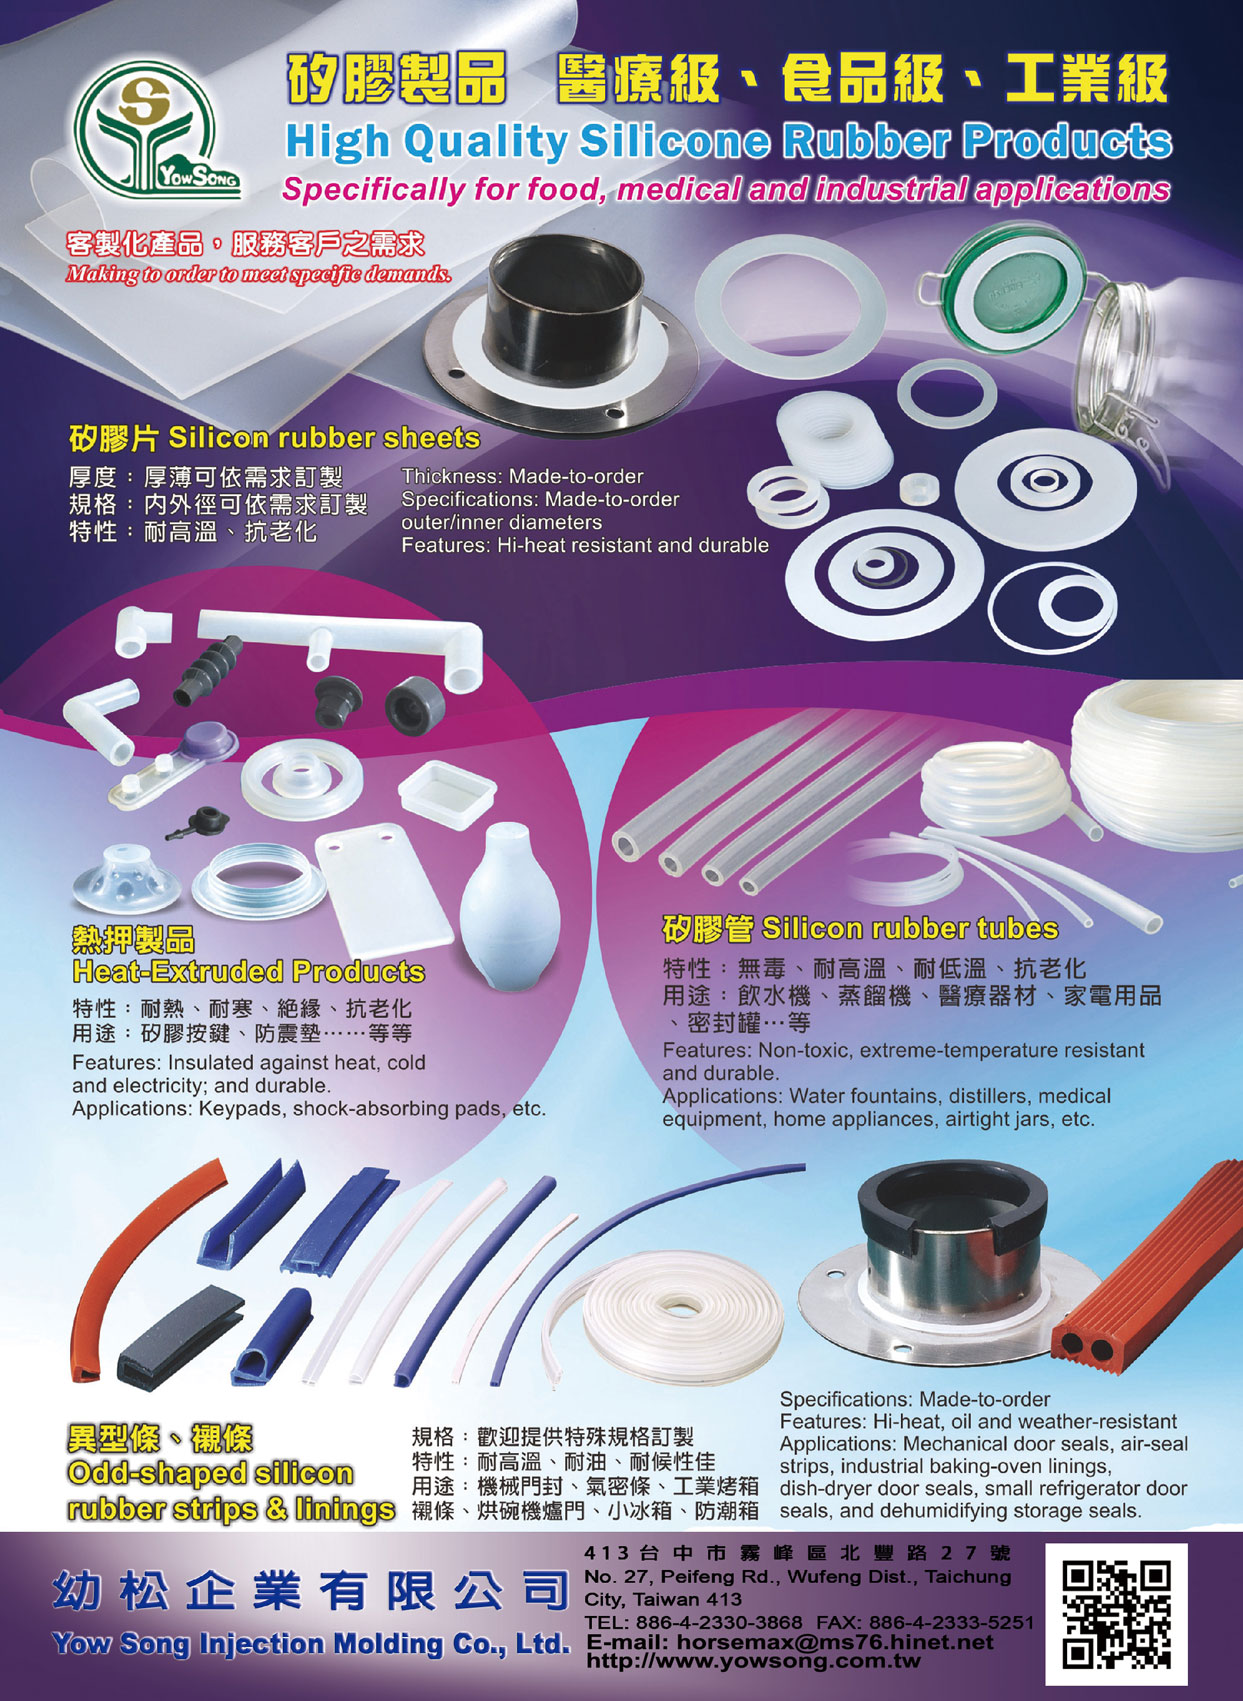 Taipei Int'l Food Show YOW SONG INJECTION MOLDING CO., LTD.